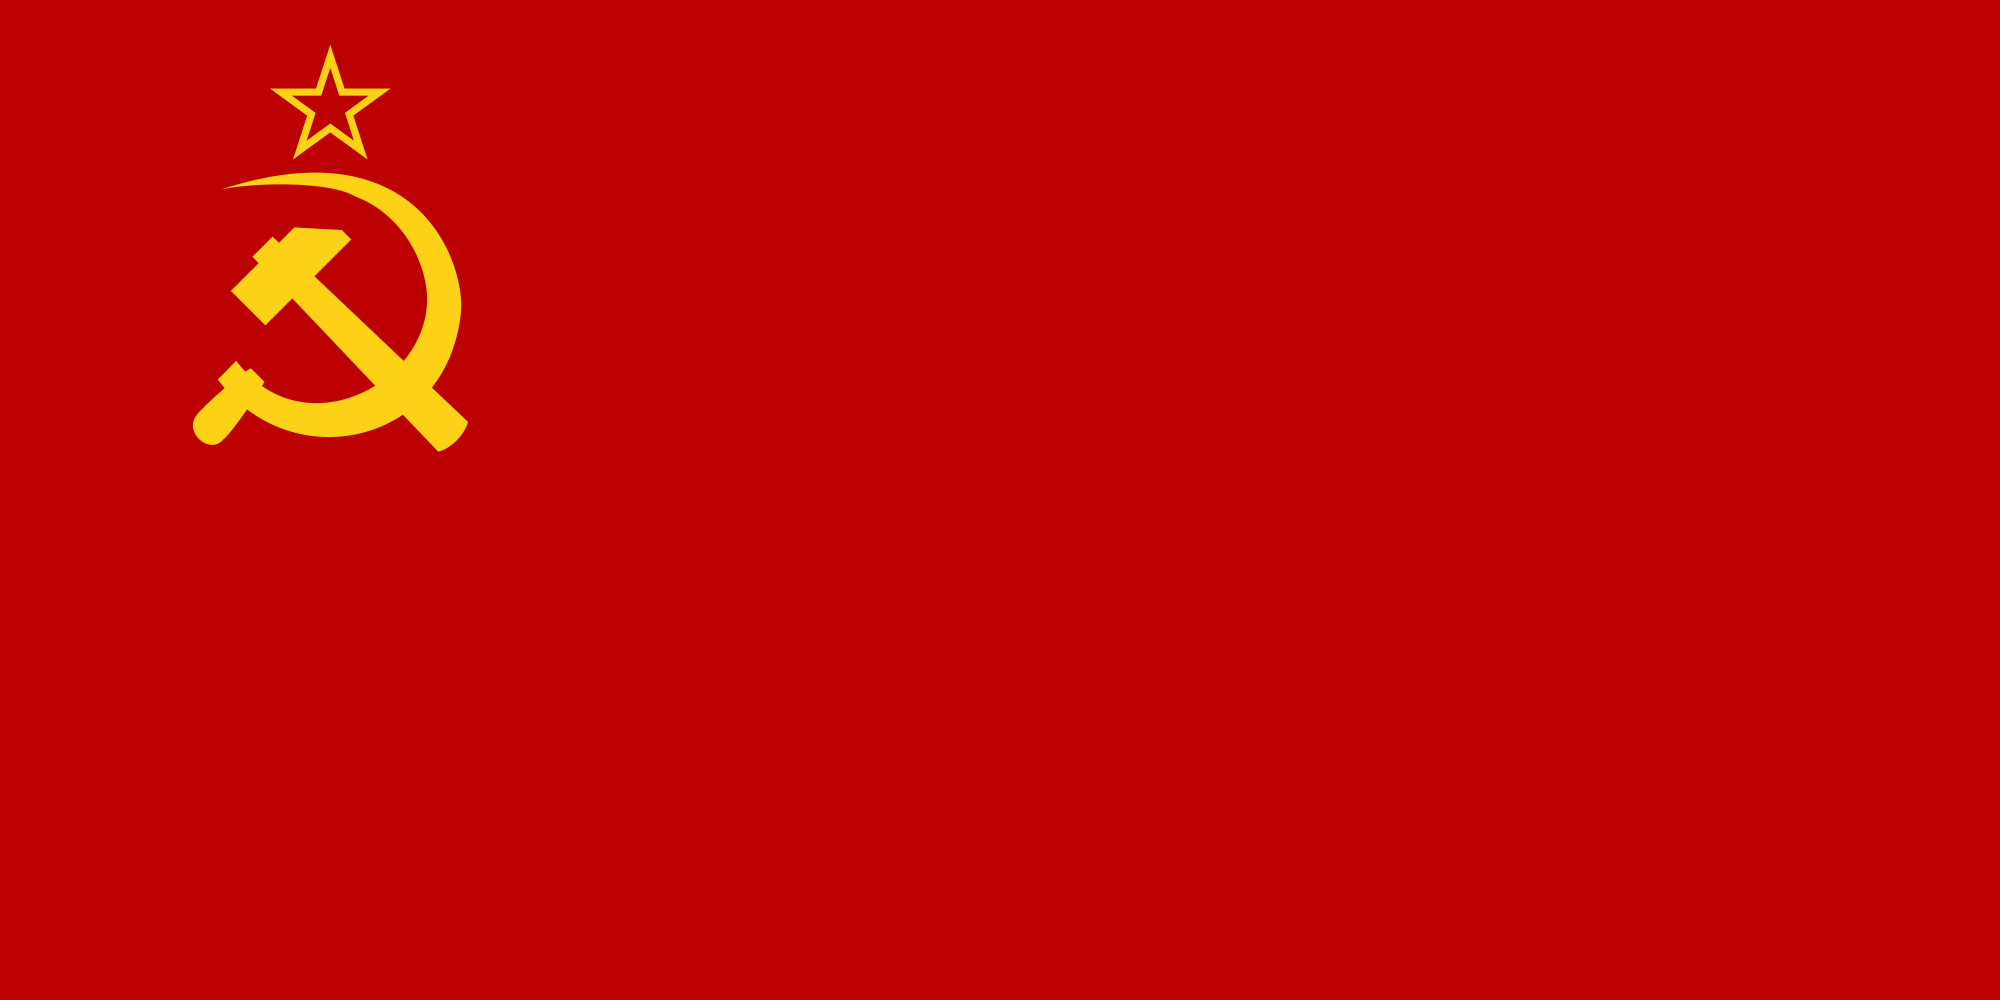 2000px-Flag_of_the_Soviet_Union_(1923-1955).svg.png